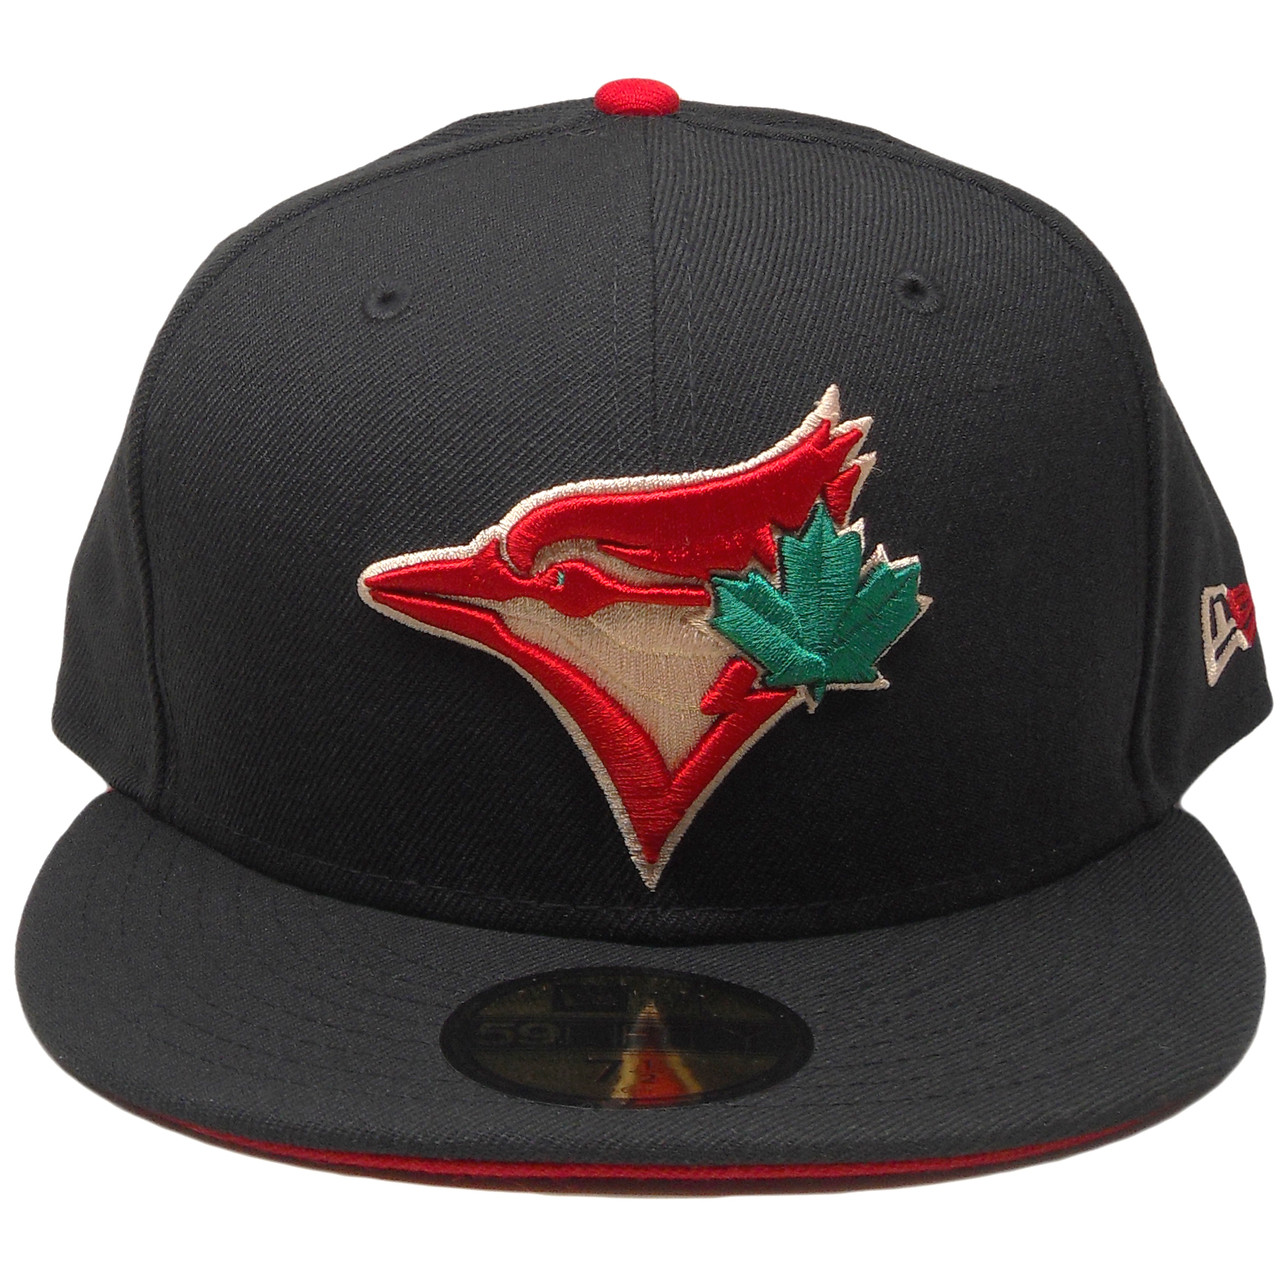 87f34286e3f ... authentic toronto blue jays new era 59fifty custom fitted hat black red  green. larger more ...